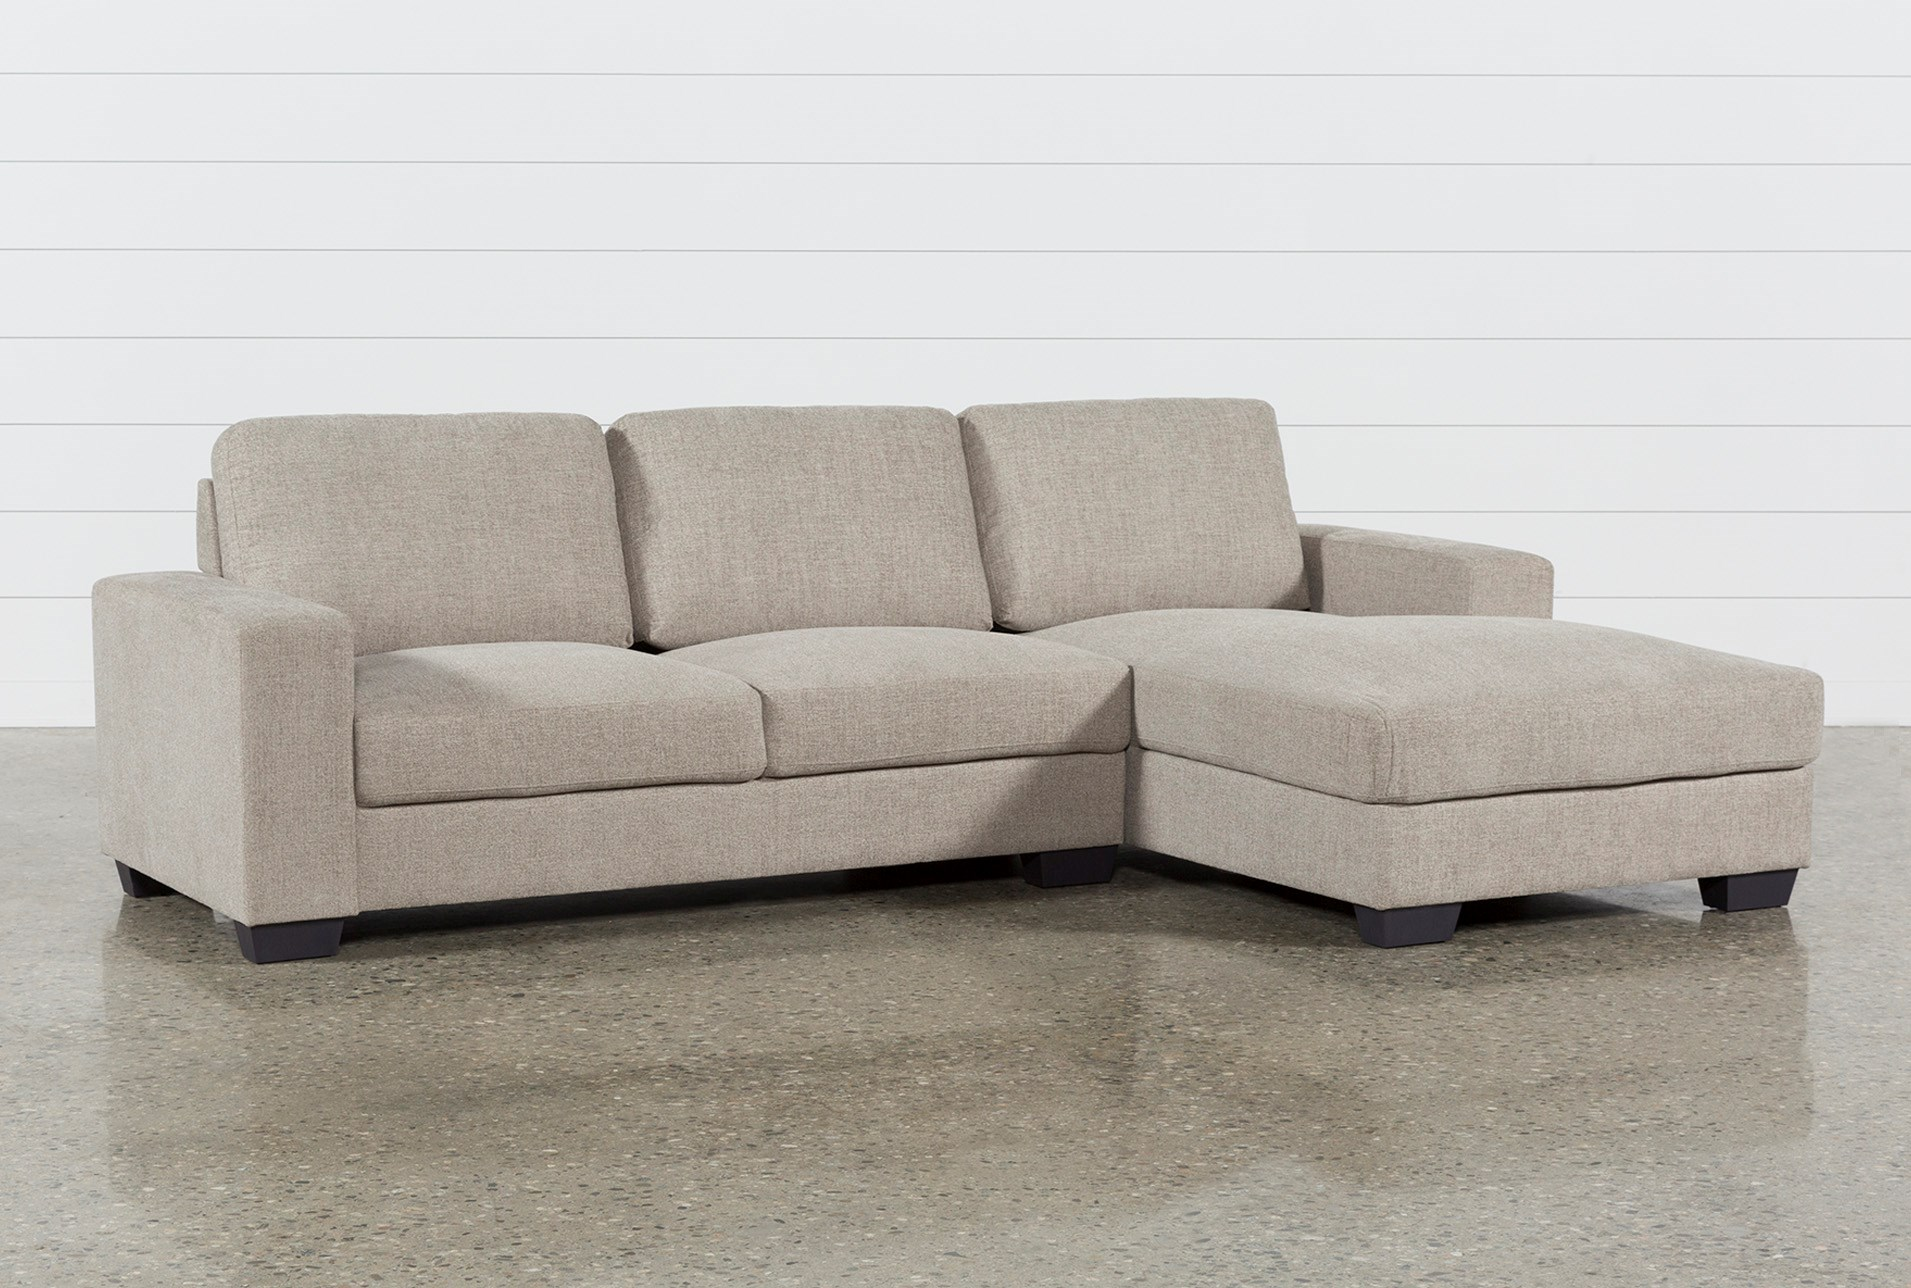 com excellent spaces living zella chaise sofa of sectional aifaresidency piece w laf for with charcoal